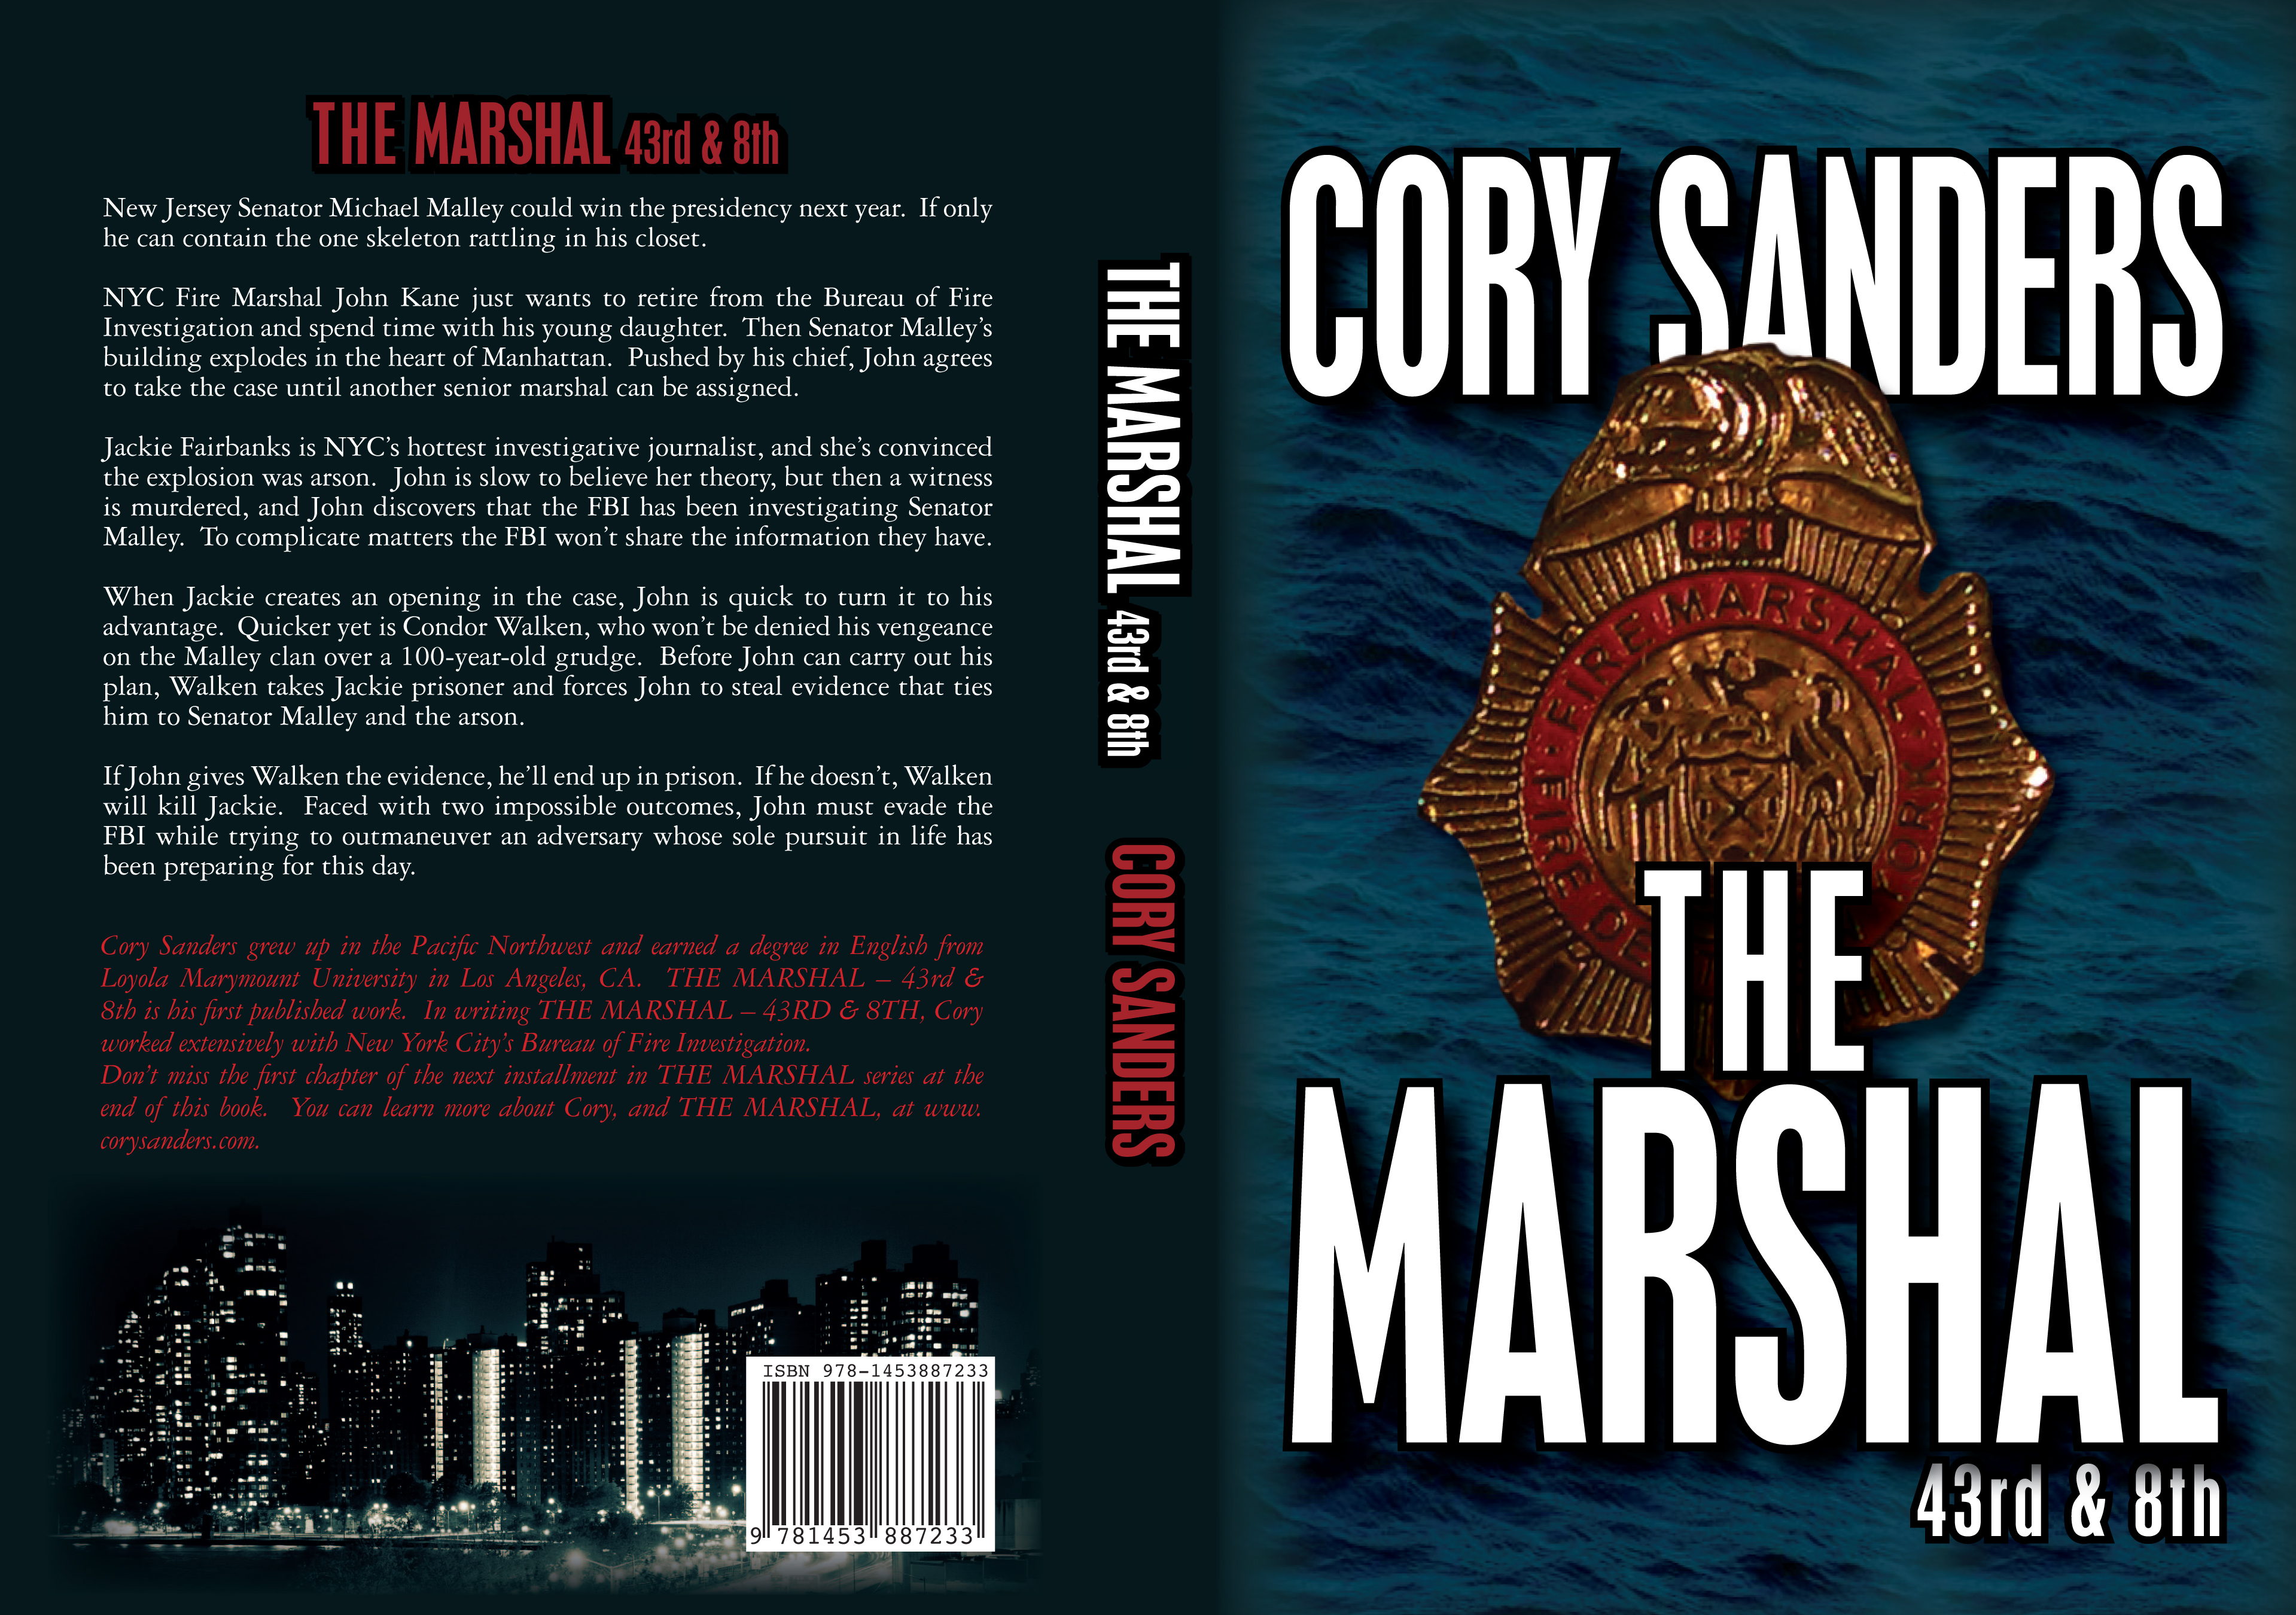 The Marshal: -- 43rd & 8th